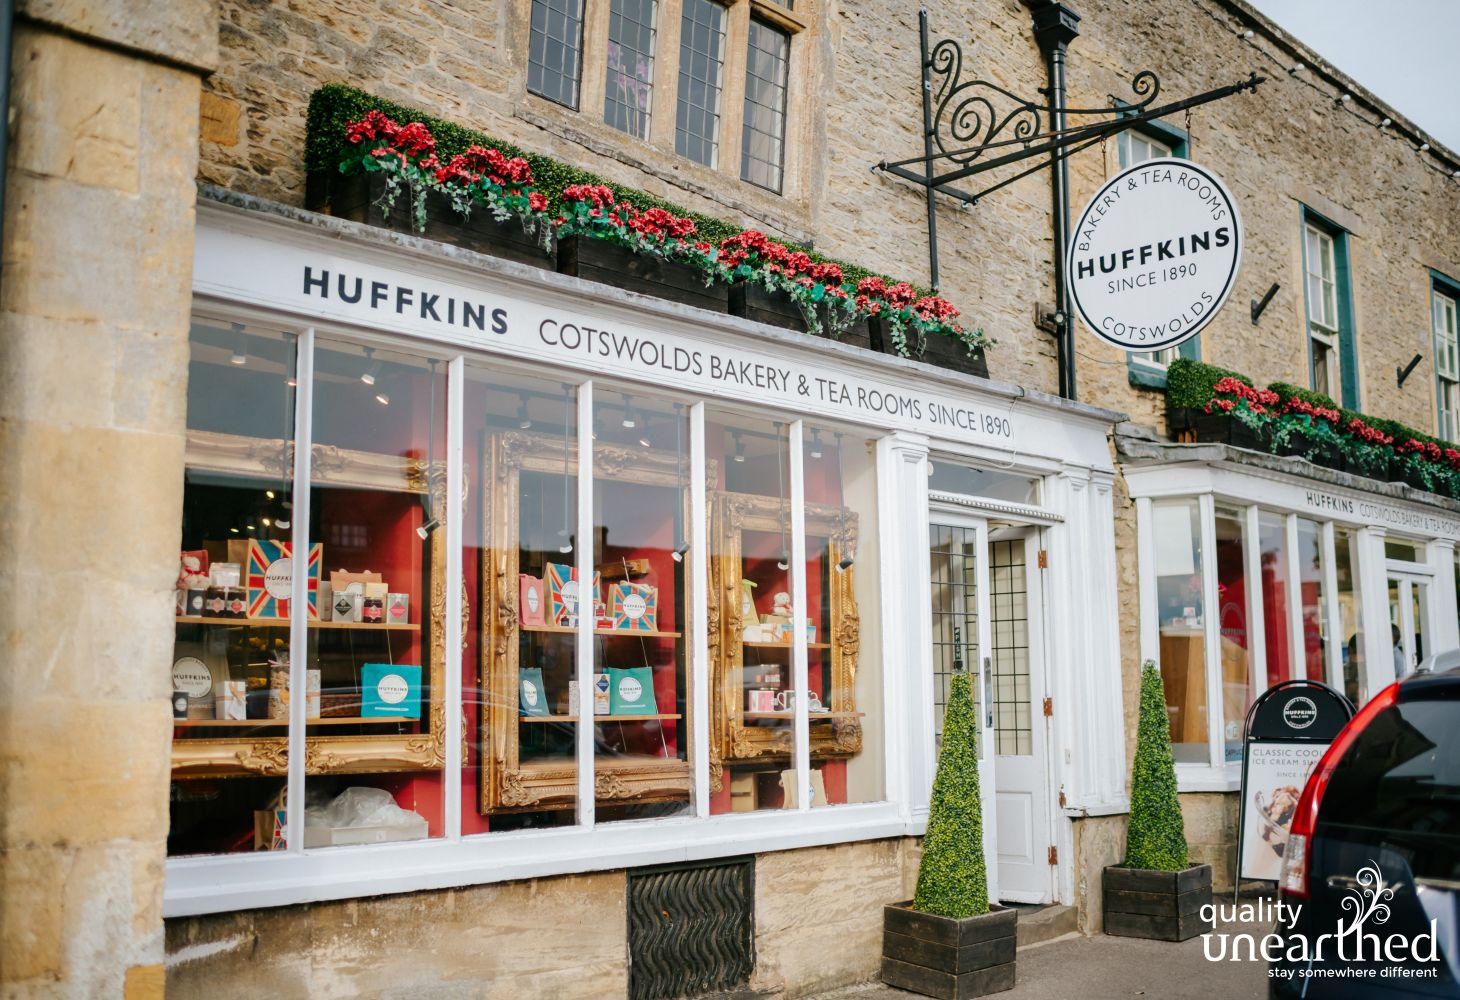 This is Huffkins bakery in the famous Cotswold town of Stow On The Wold